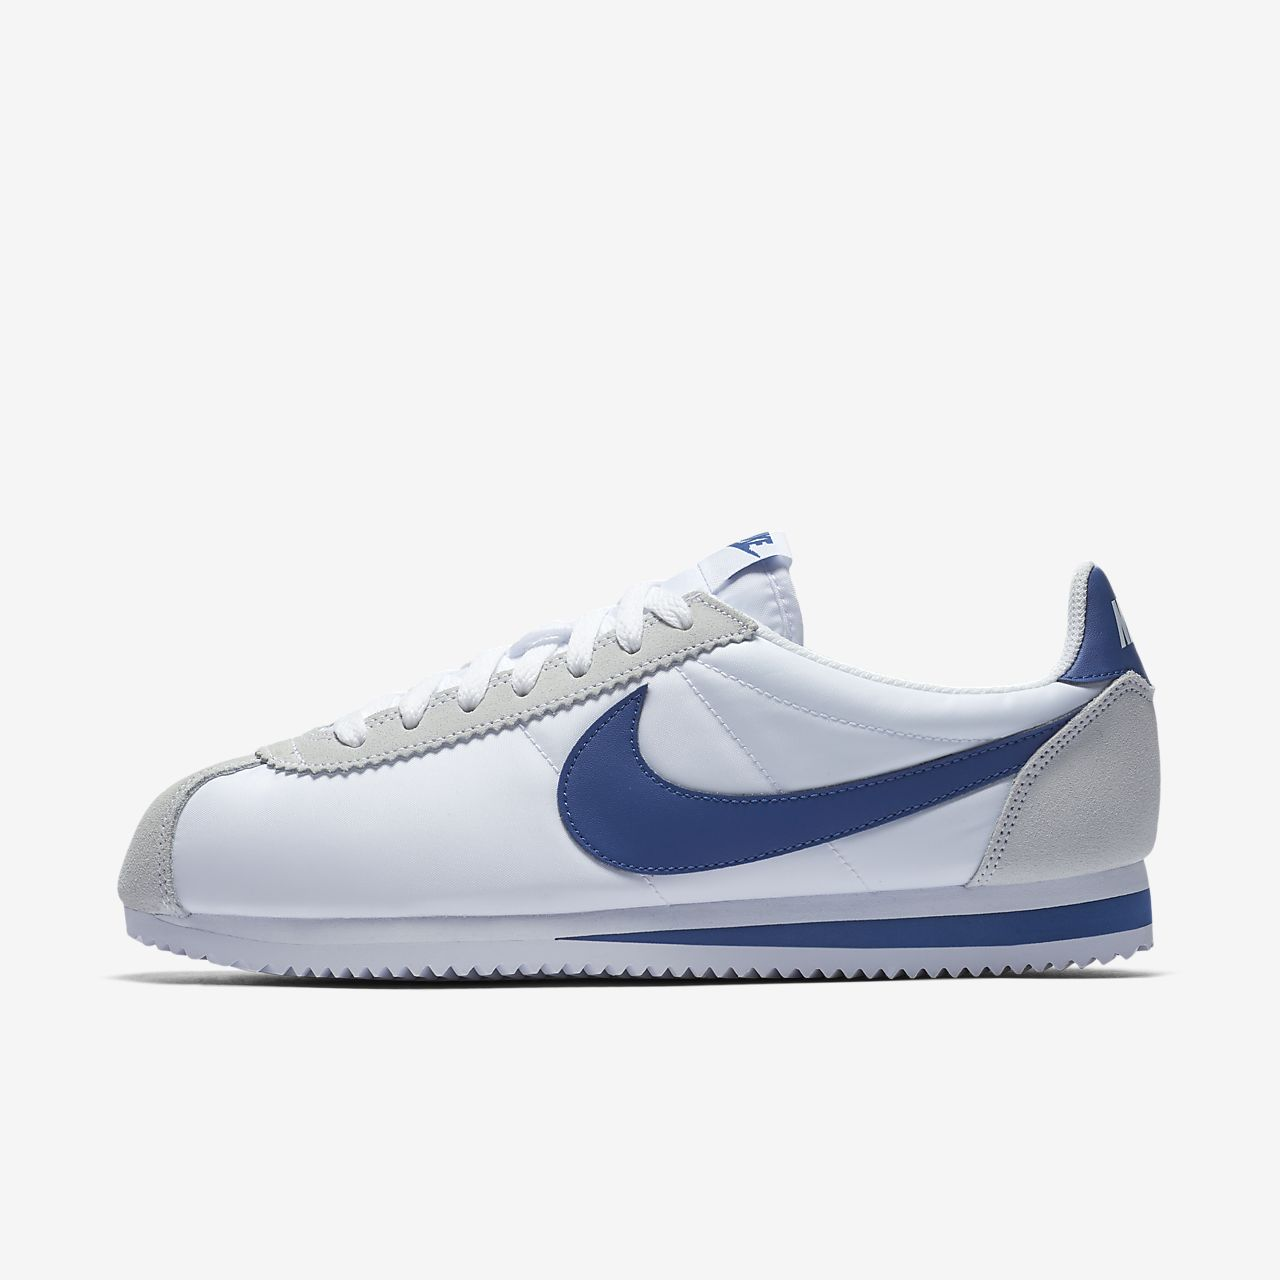 Marques Chaussure homme Nike homme Classic Cortez Nylon White/Habanero Red